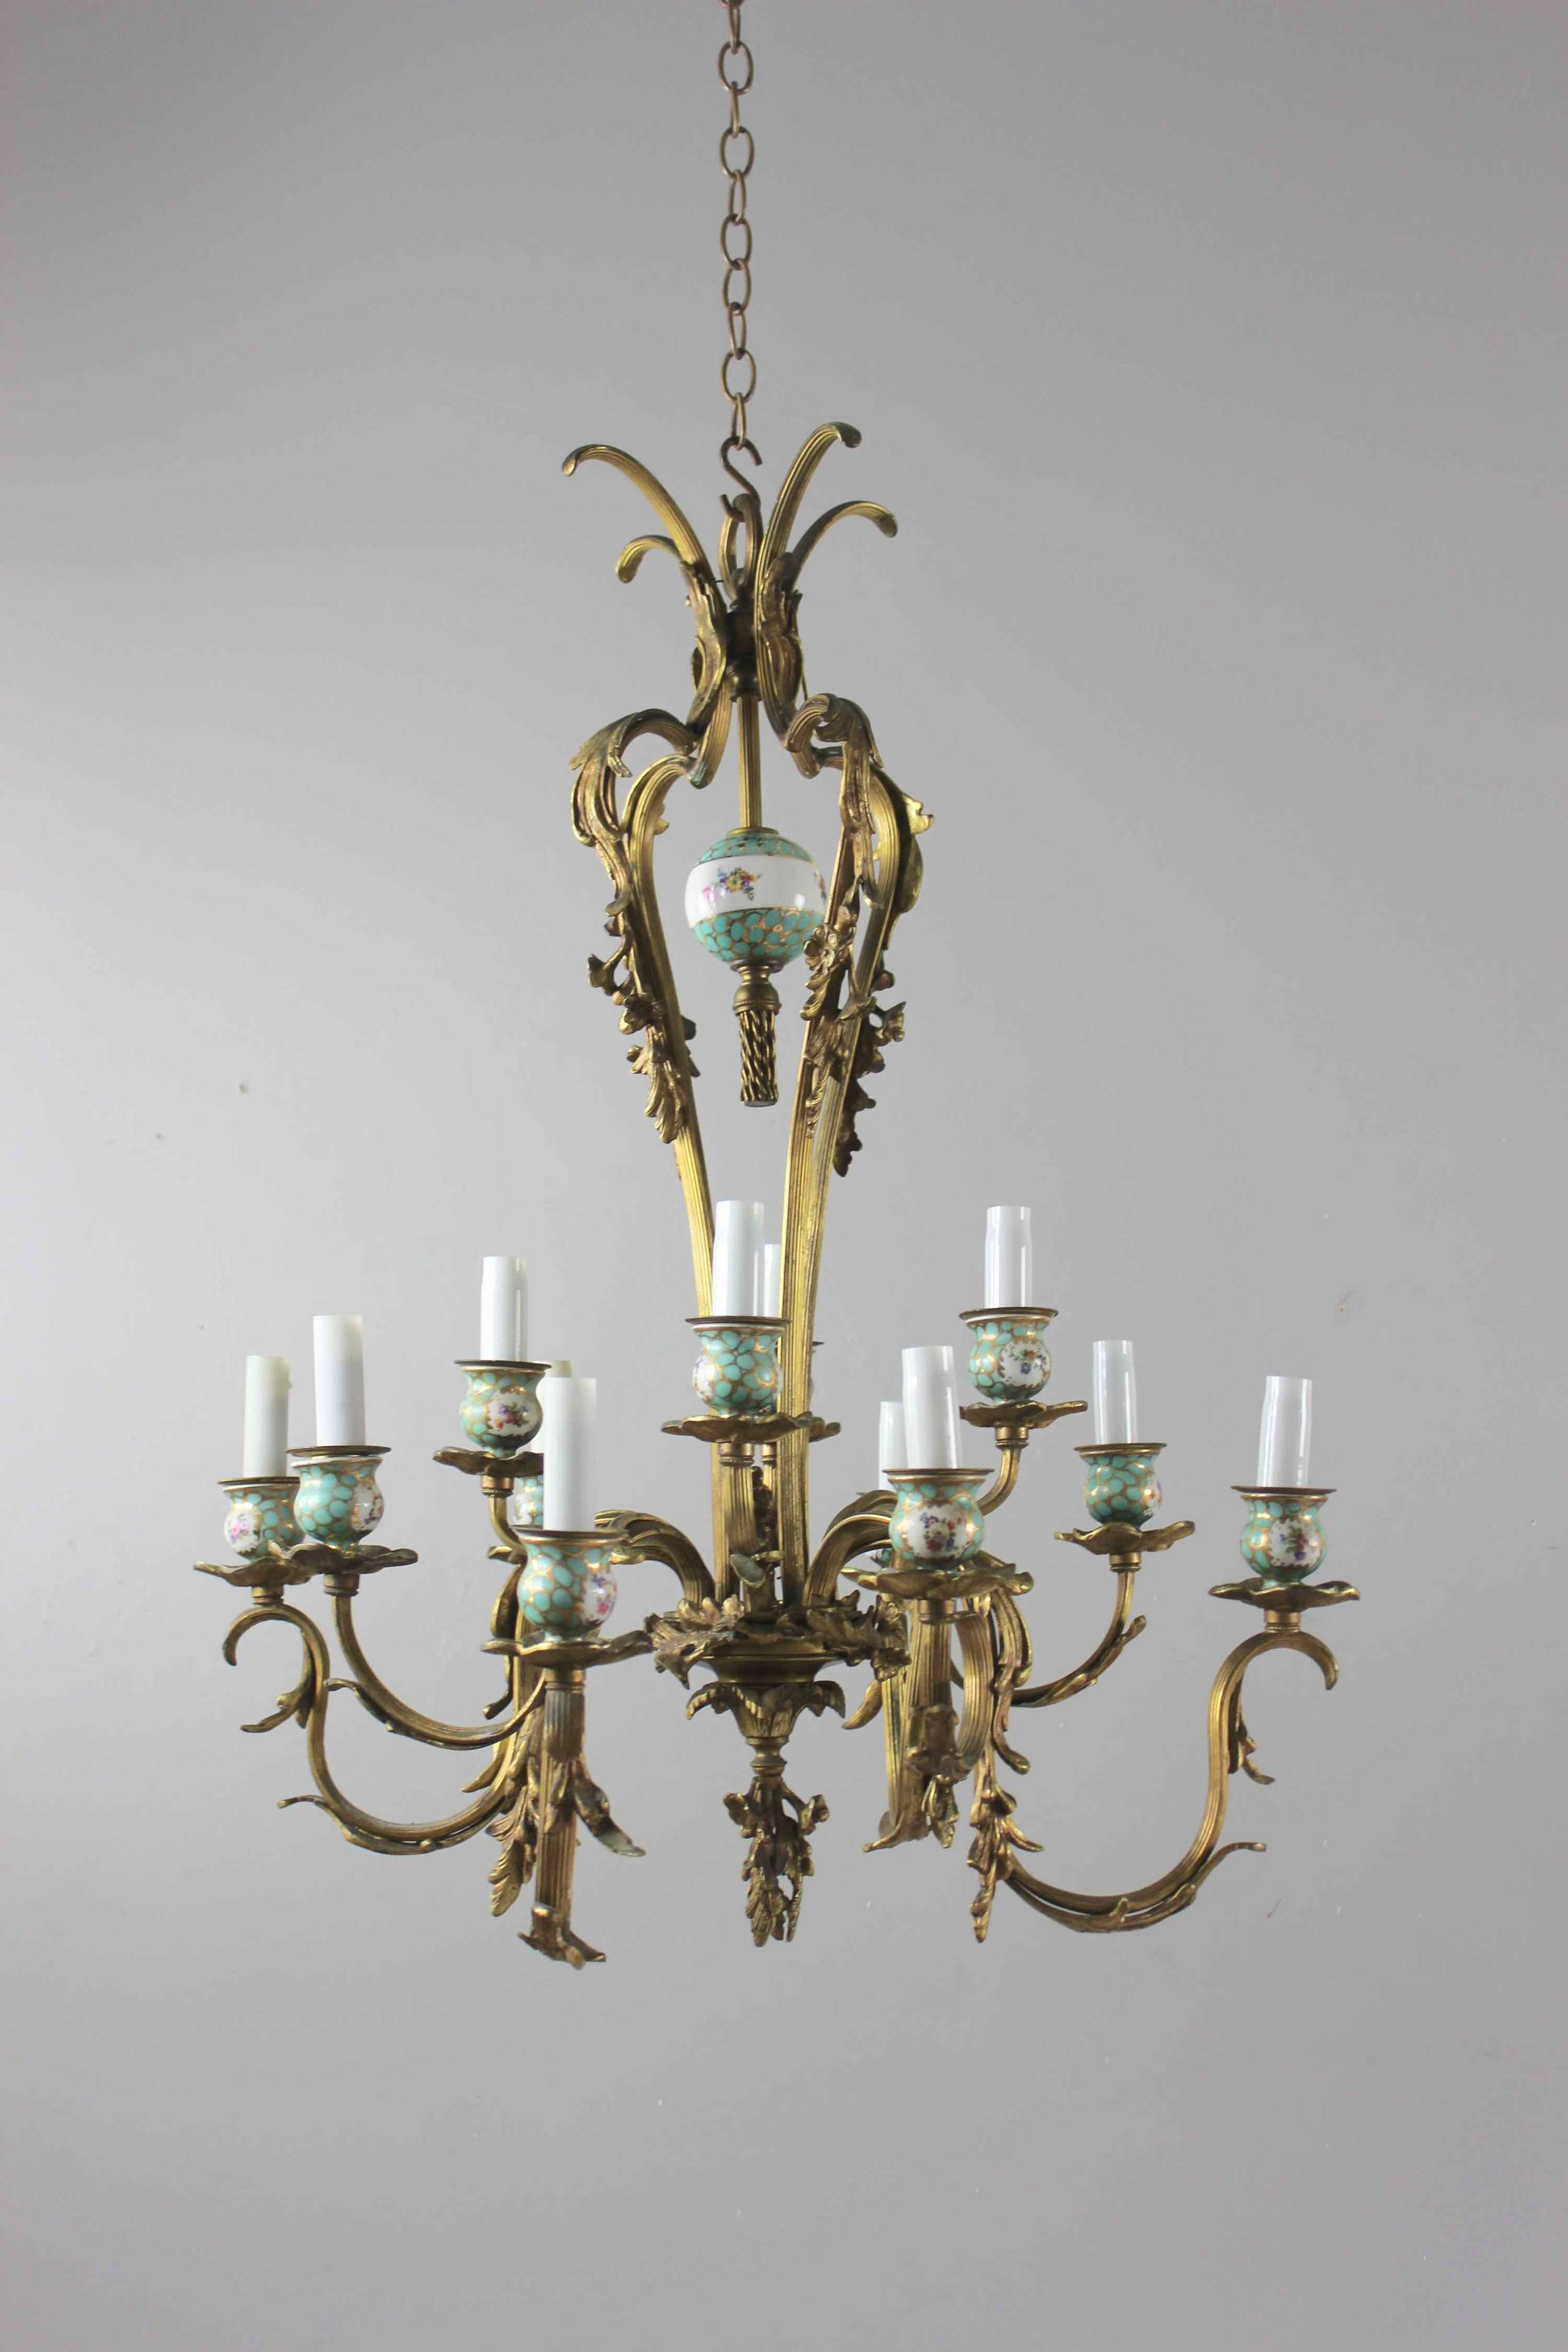 Brass and ceramic two tier antique chandelier